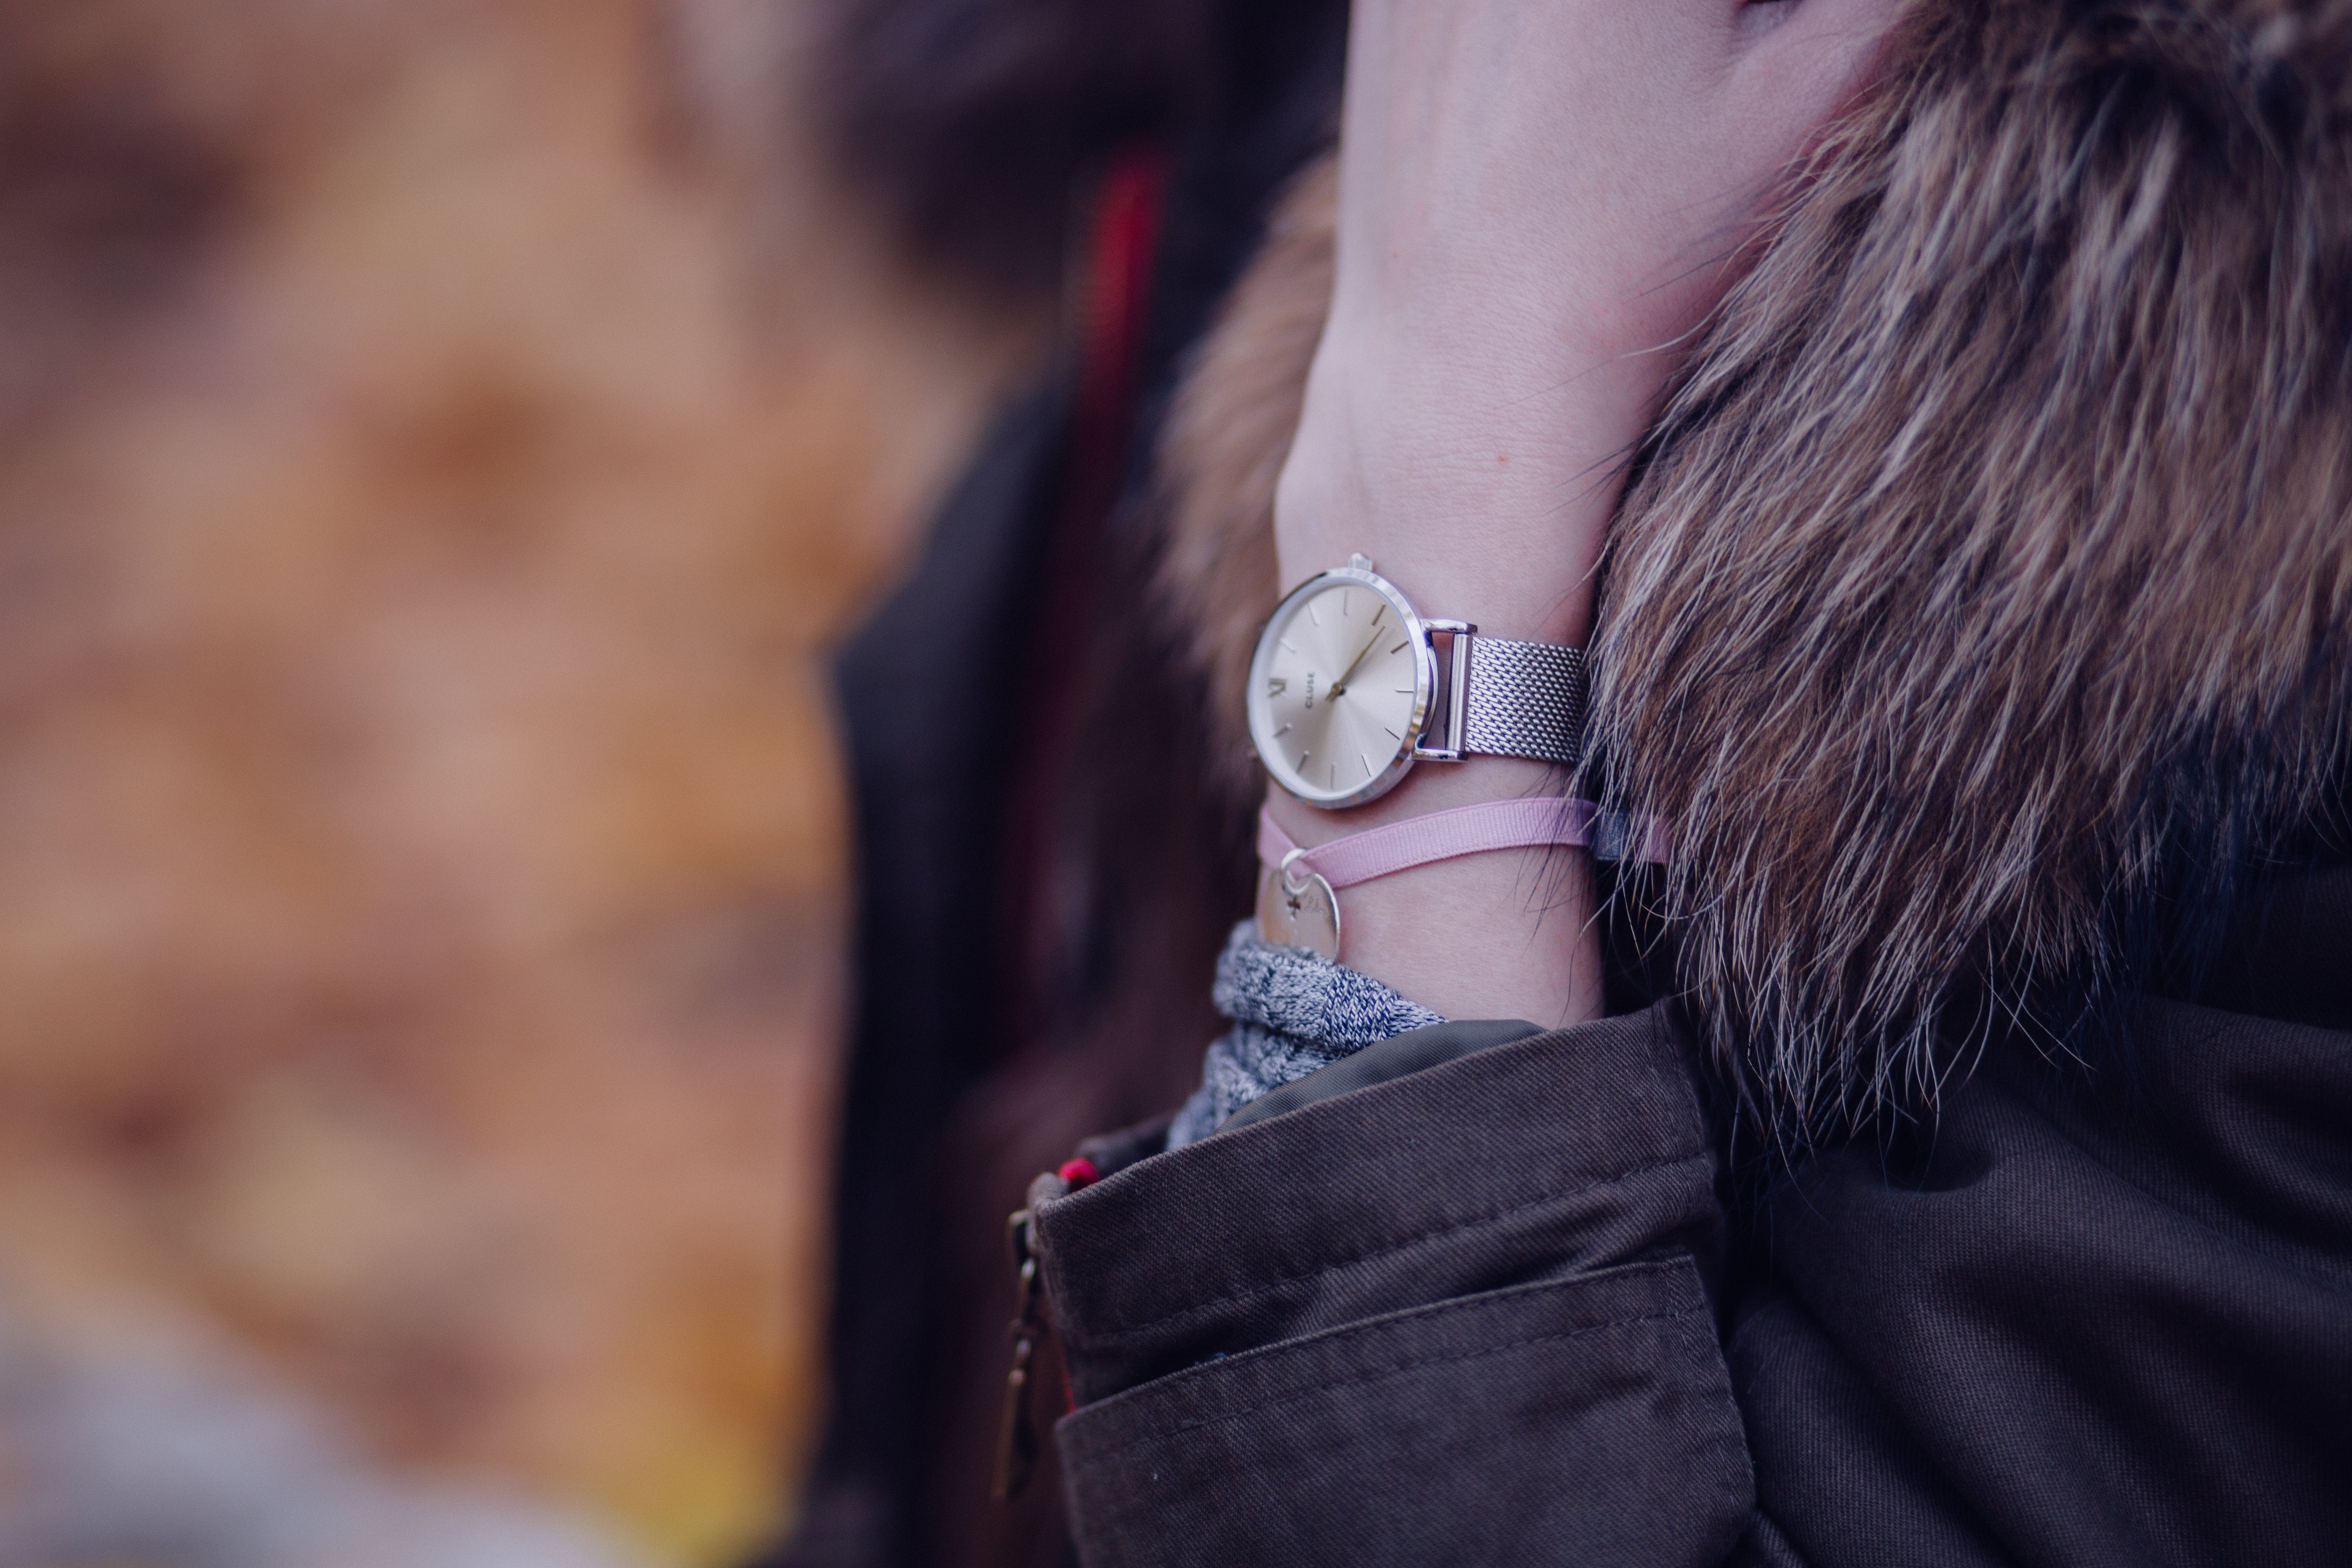 Woman in Brown Parka Jacket With Gold Round Analog Watch